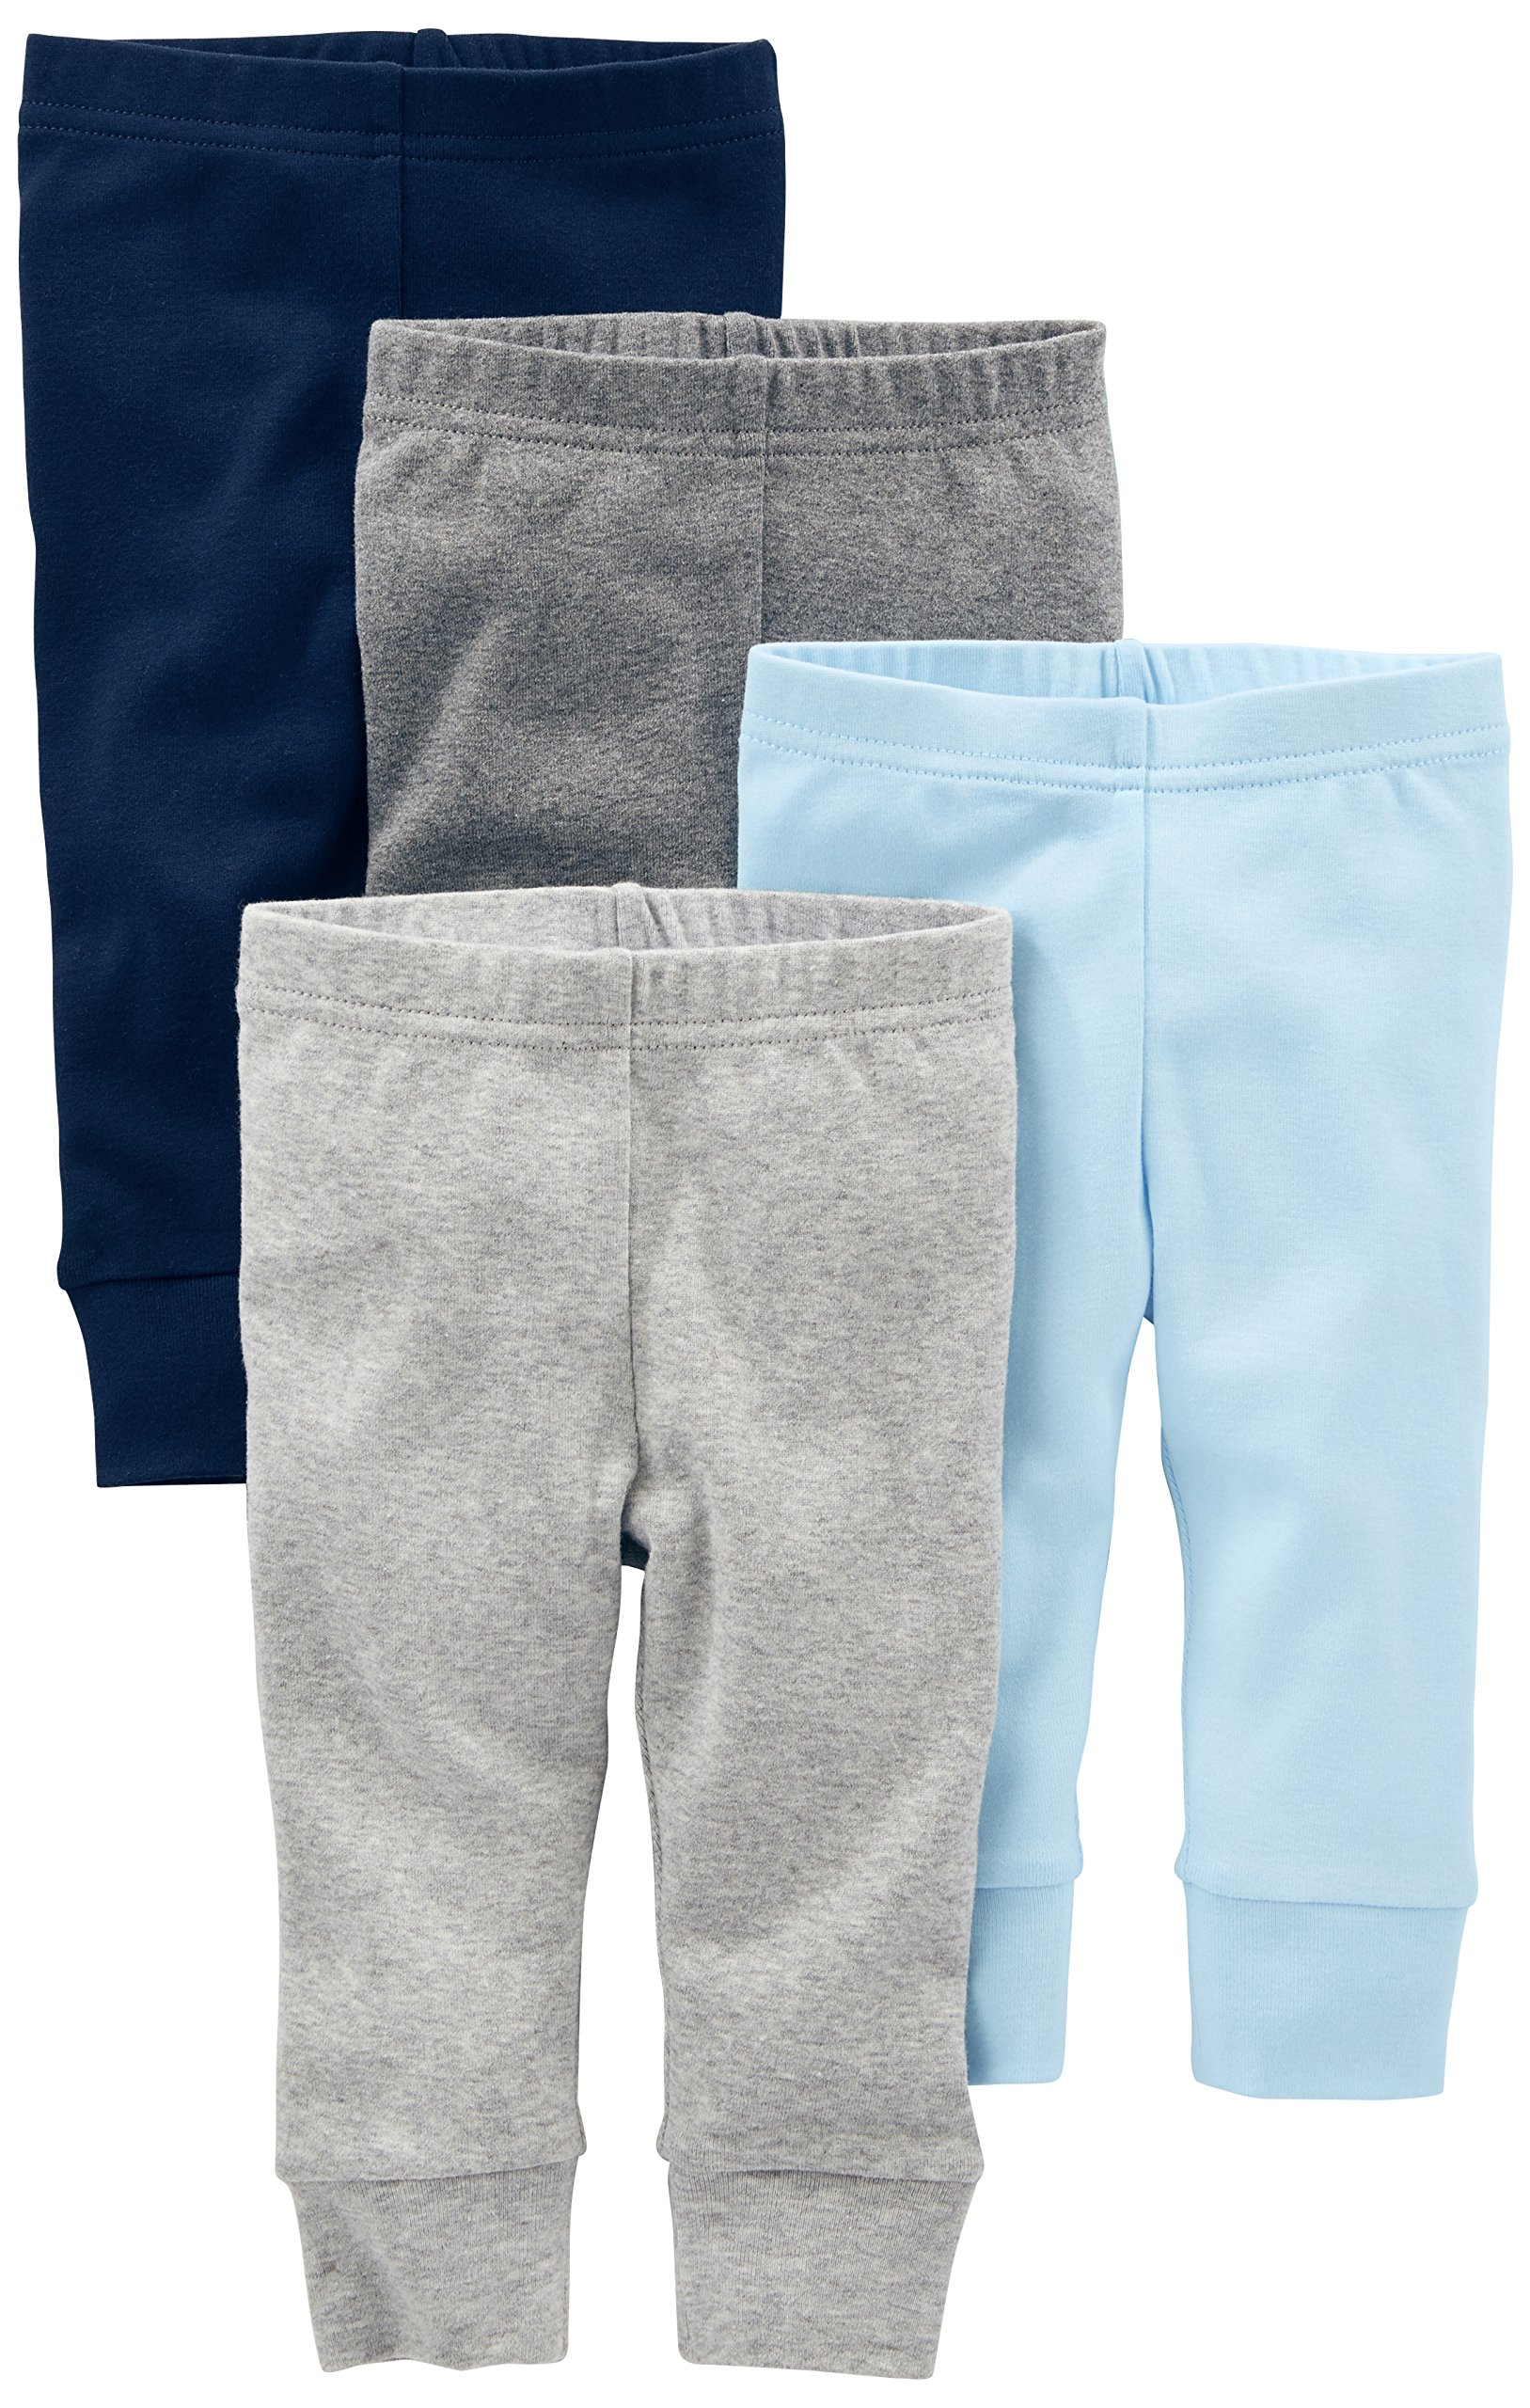 Simple Joys by Carter's Baby Boys 4-Pack Pant, Blue/Grey, 24 Months